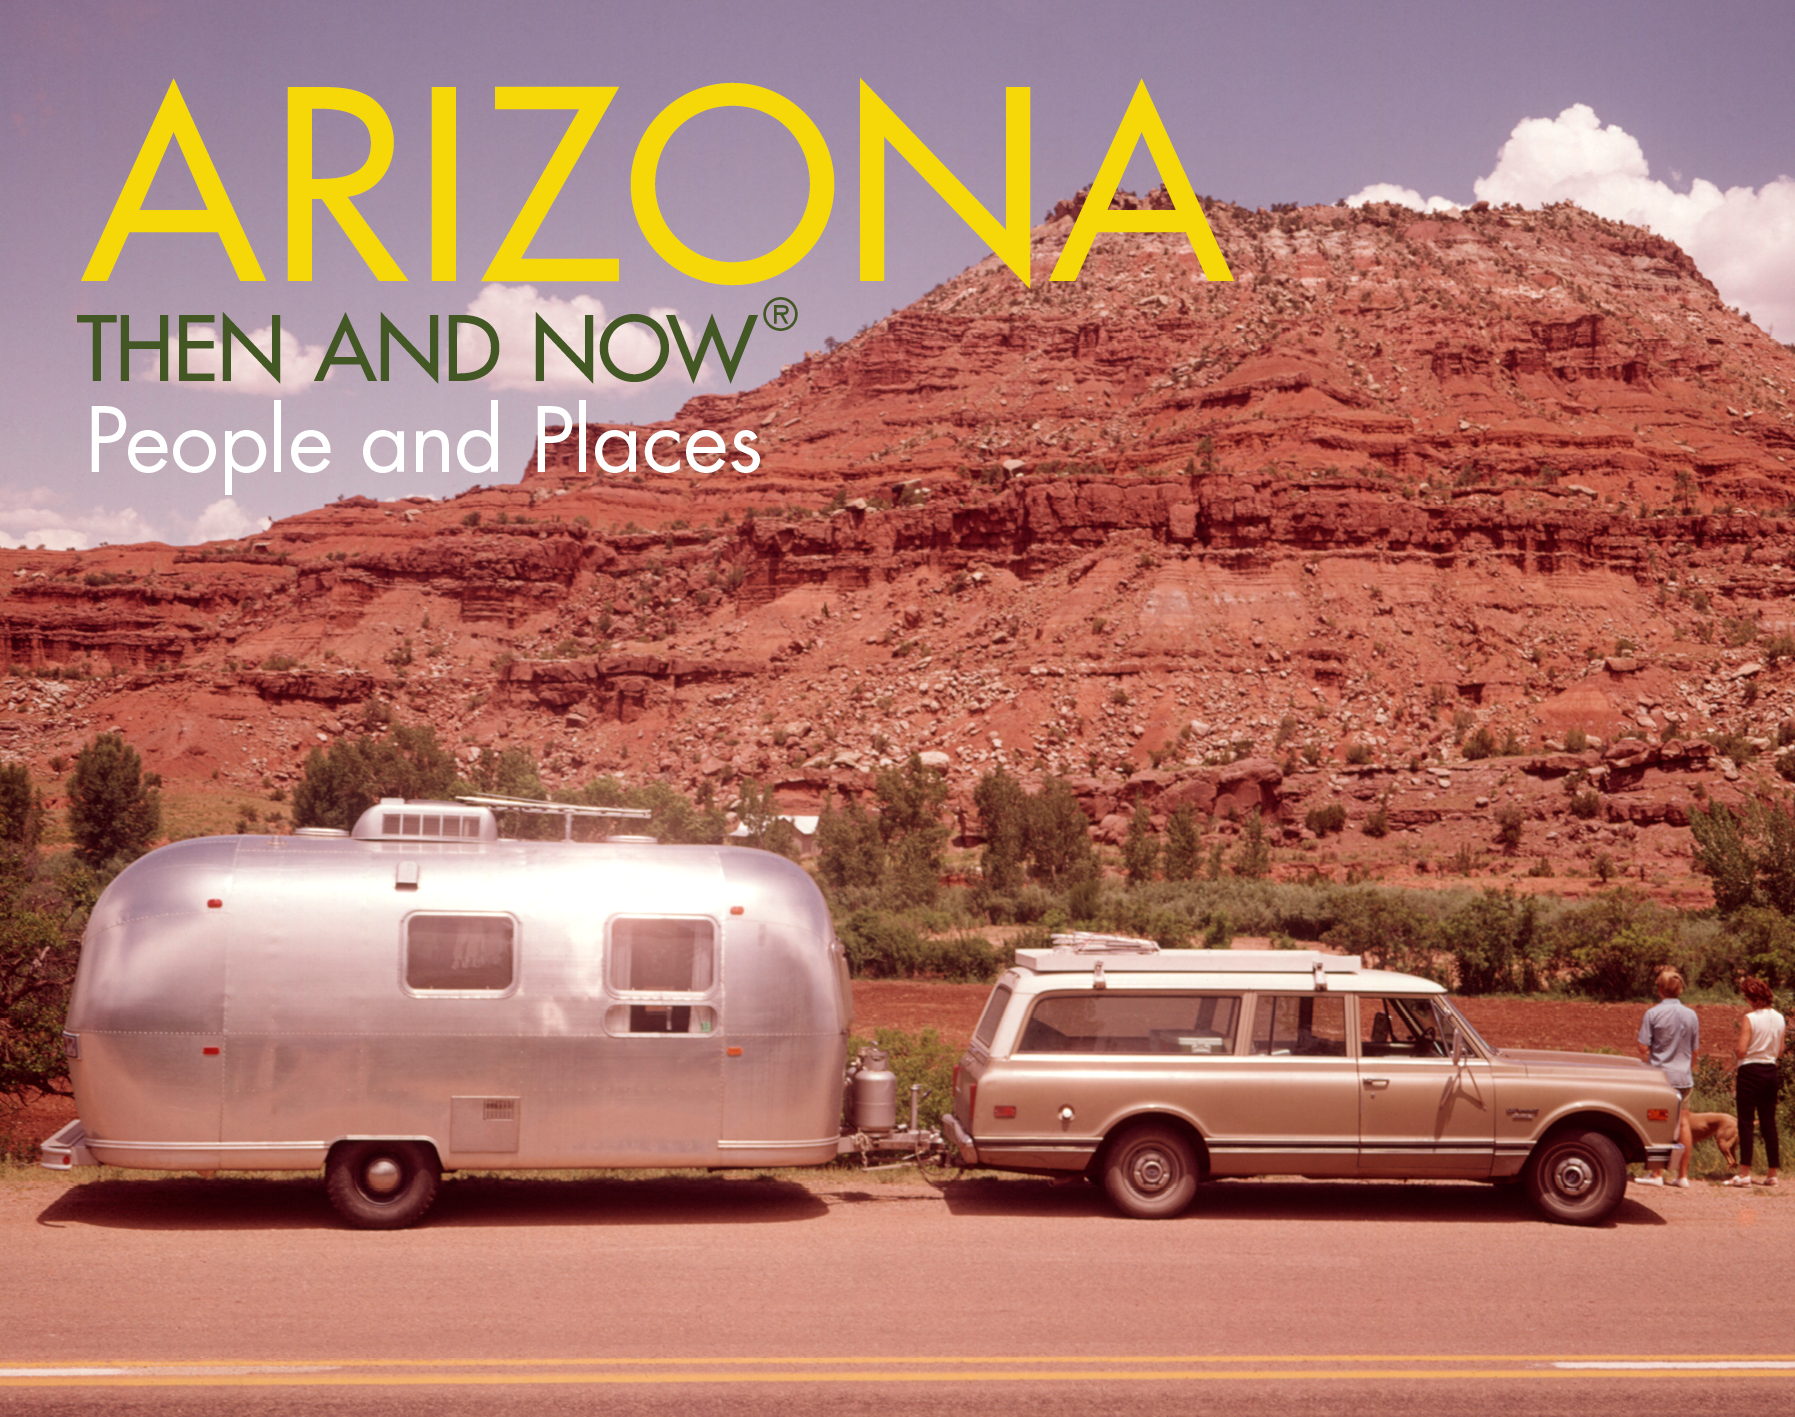 Arizona Then and Now People & Places